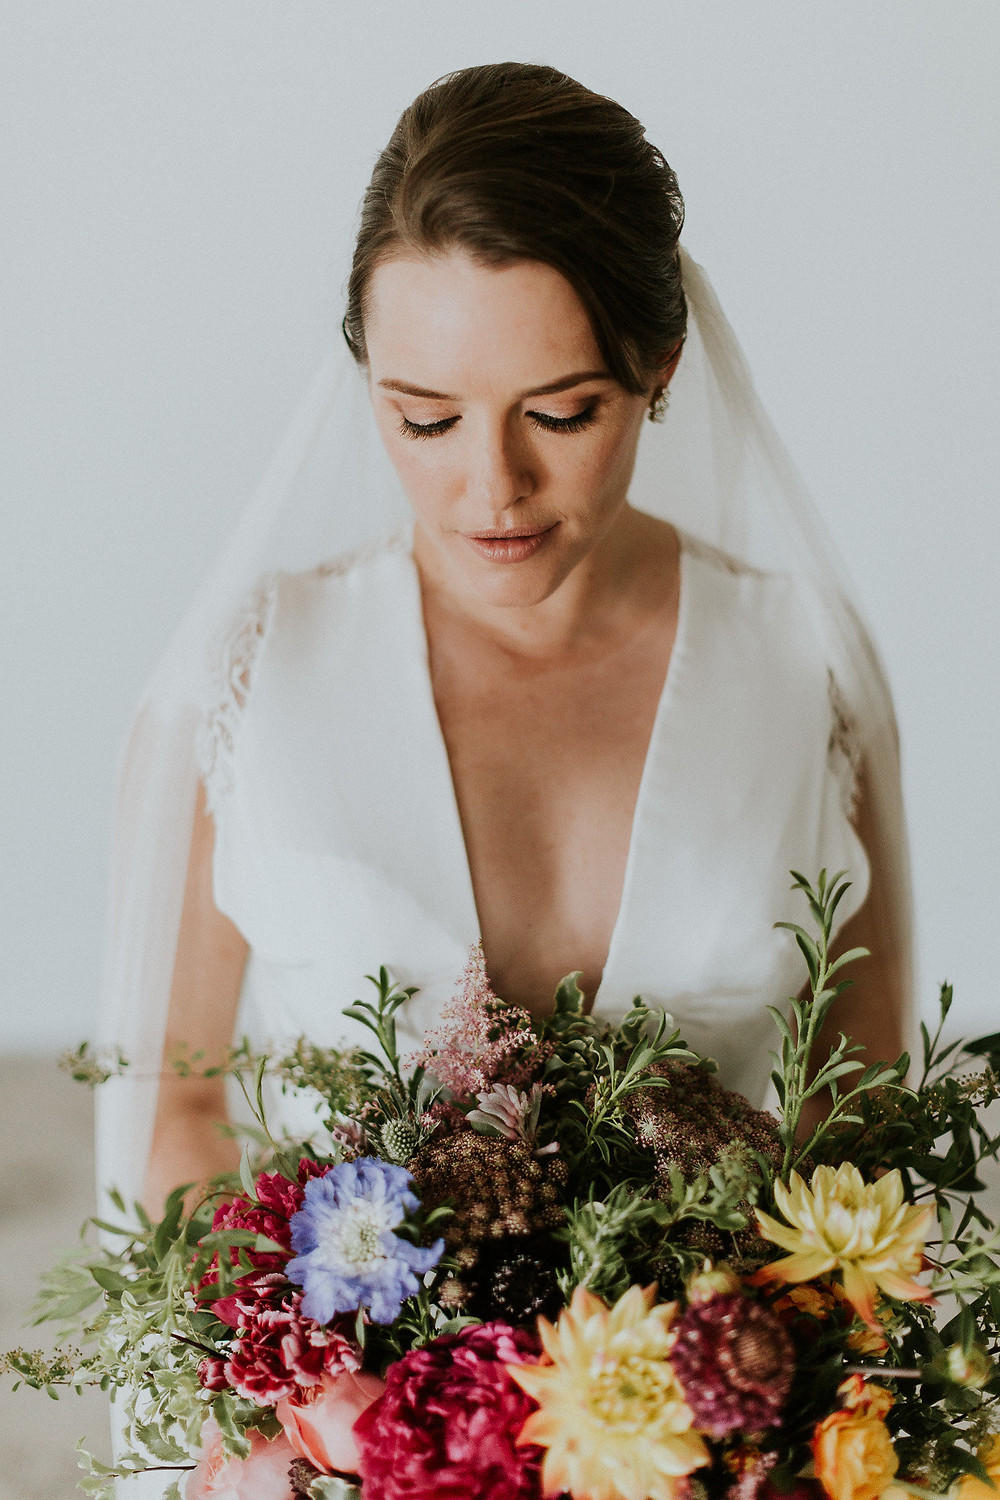 Bride poses with bridal bouquet